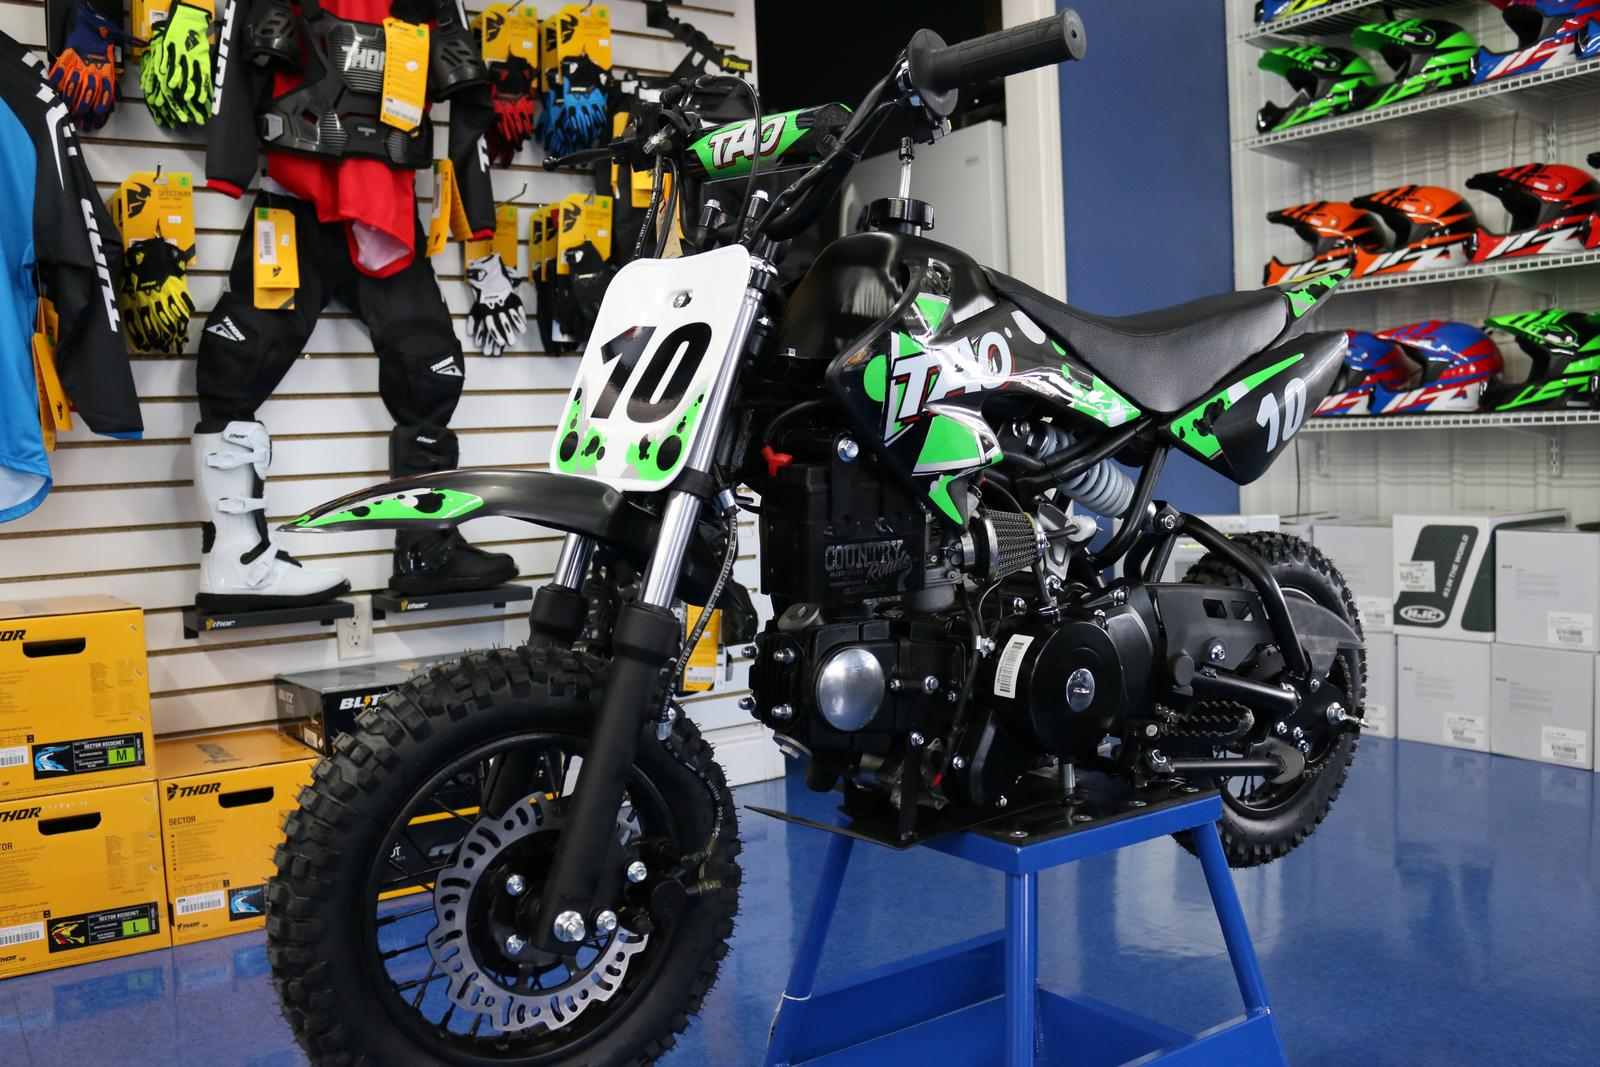 2017 tao tao db10 110cc youth dirt bike for sale in greenville ky 2017 tao tao db10 110cc youth dirt bike for sale in greenville ky country roads auto sales and powersports 270 338 2732 publicscrutiny Images